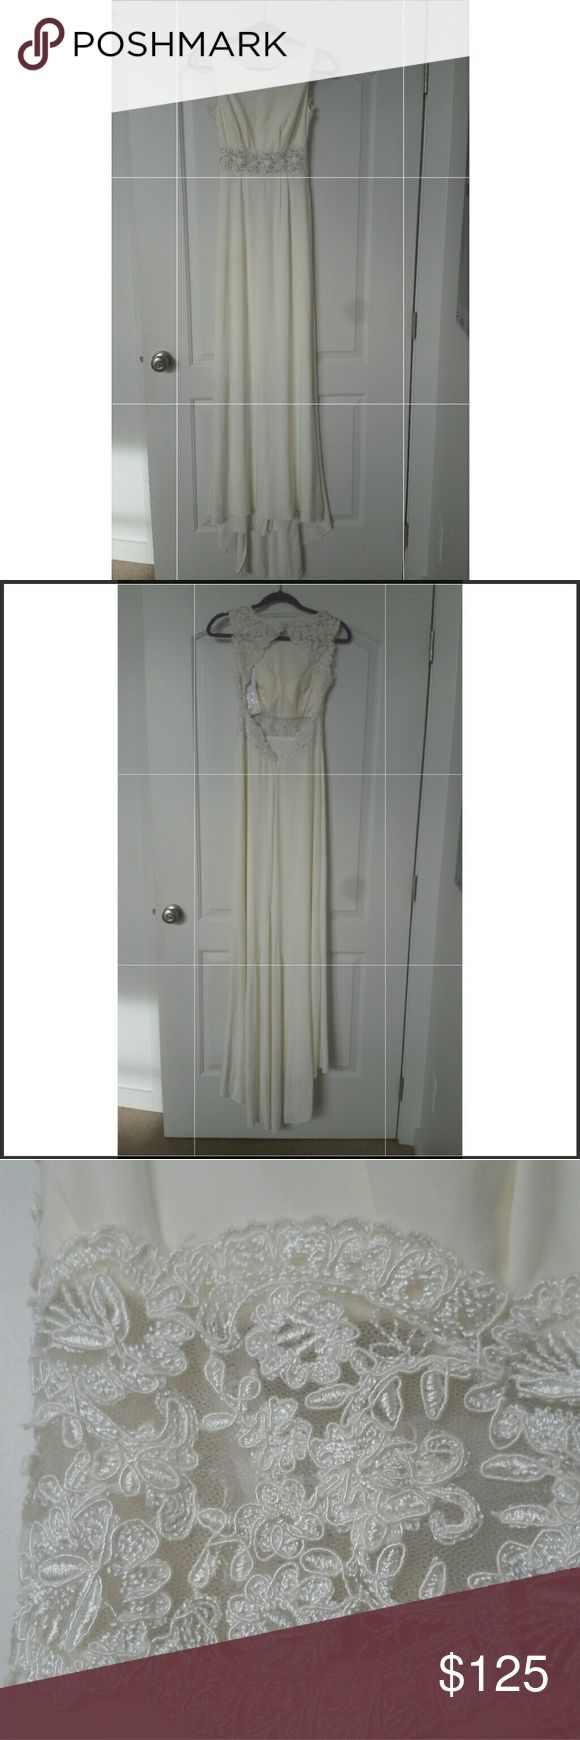 🎉BRAND NEW Davids Bridal gown Gorgeous IVORY Boatneck tank jersey sheath gown with stunning illusion lace waist. Dramatically gorgeous lace keyhole back and mini-train. Center back-zip closure. Dry clean only. Never worn. Purchased in store so some minor marks, a snag, all come out with dry cleaning.  Size 2 David's Bridal Dresses Wedding